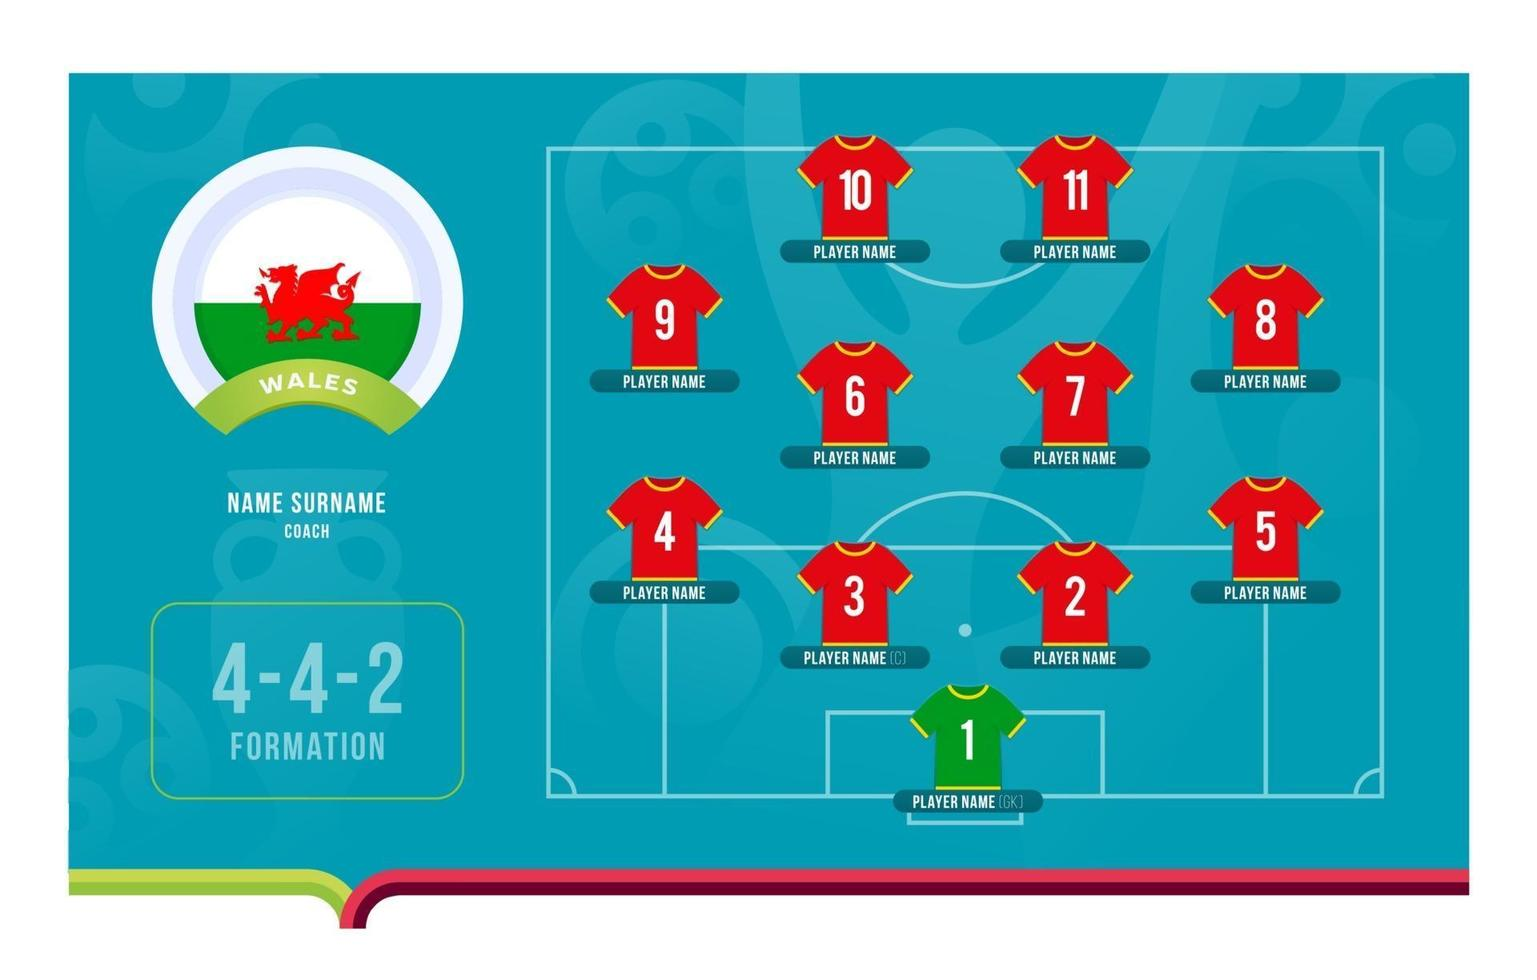 Wales line-up Football tournament final stage vector illustration